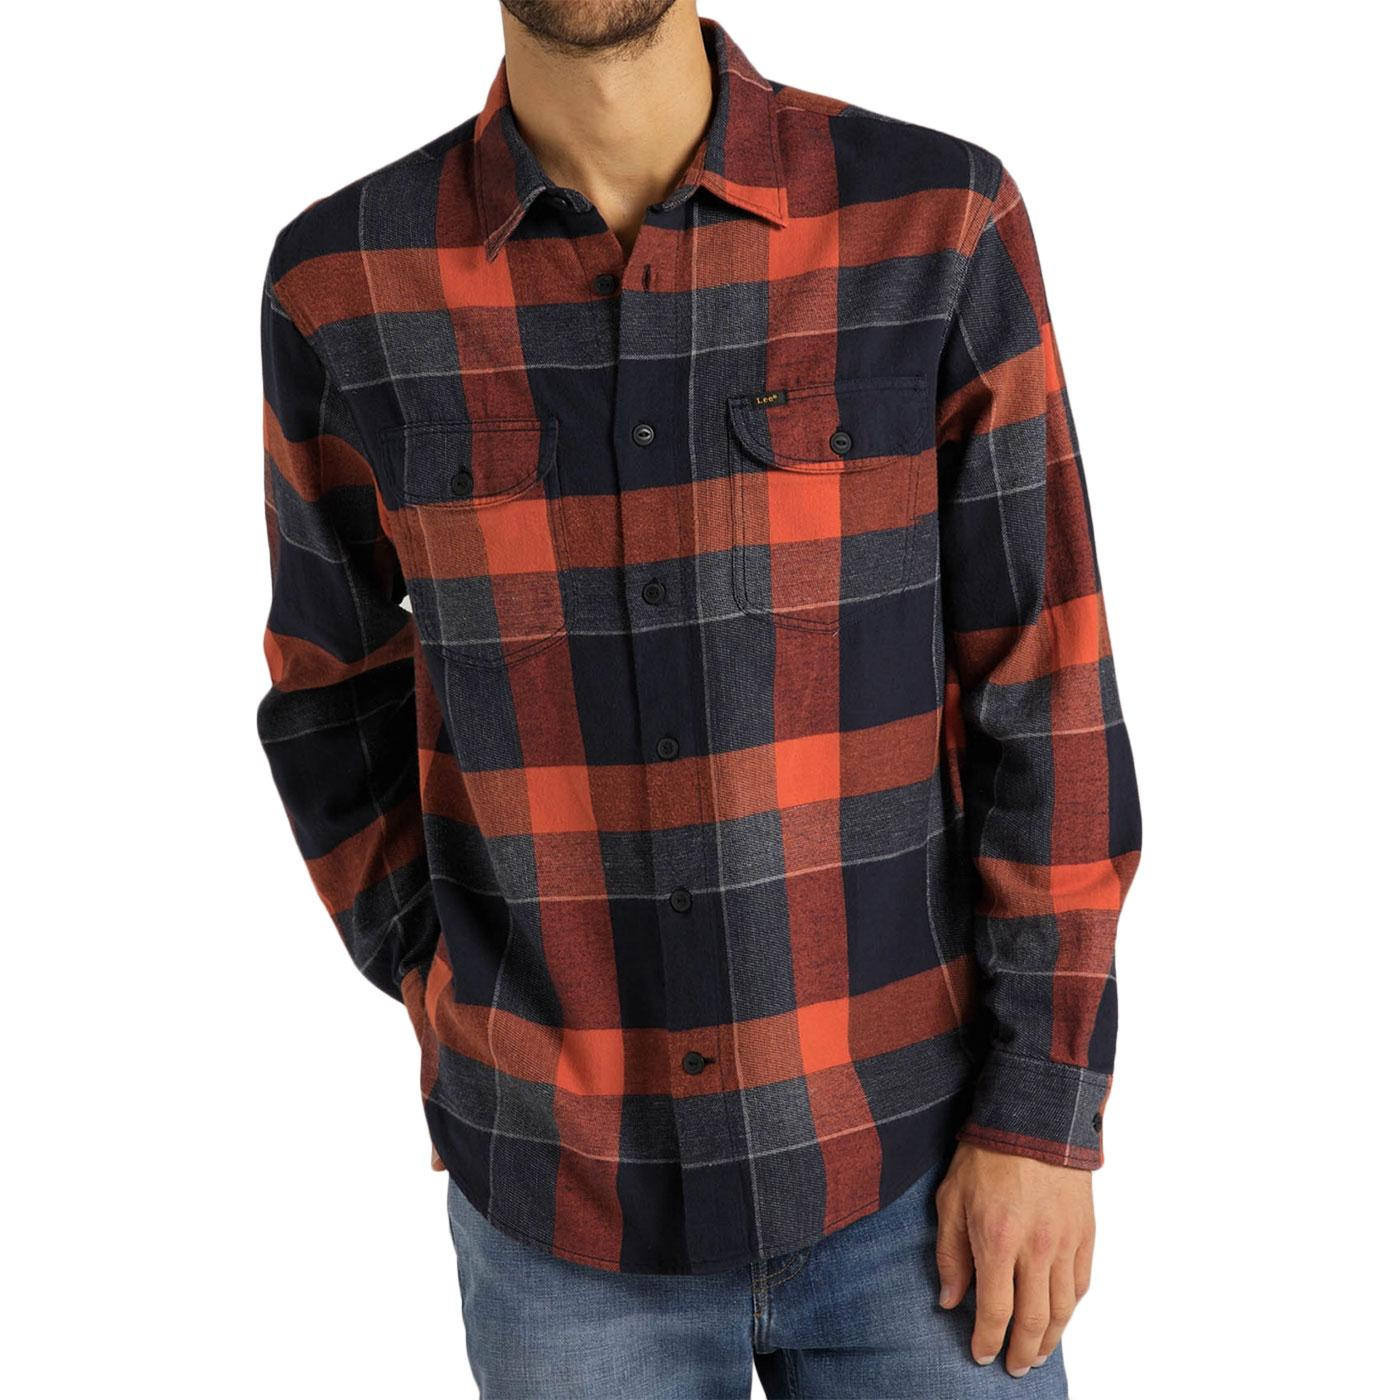 LEE JEANS Retro Mod Texture Check Worker Shirt